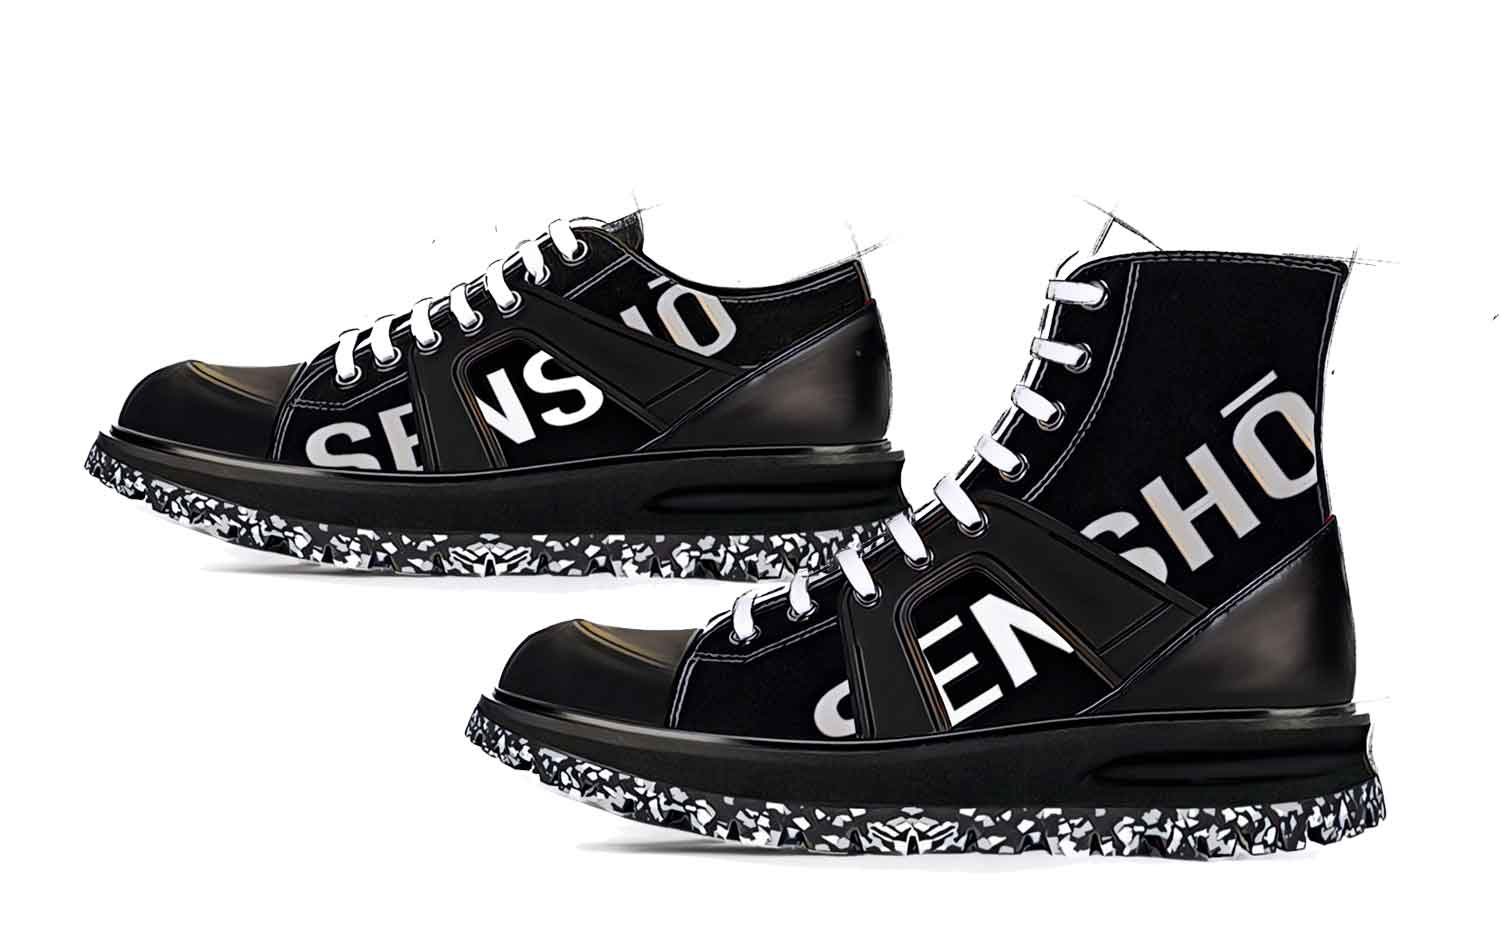 Men's Shoes Collection Trend Balck & White Text FW20 - Footwear Design